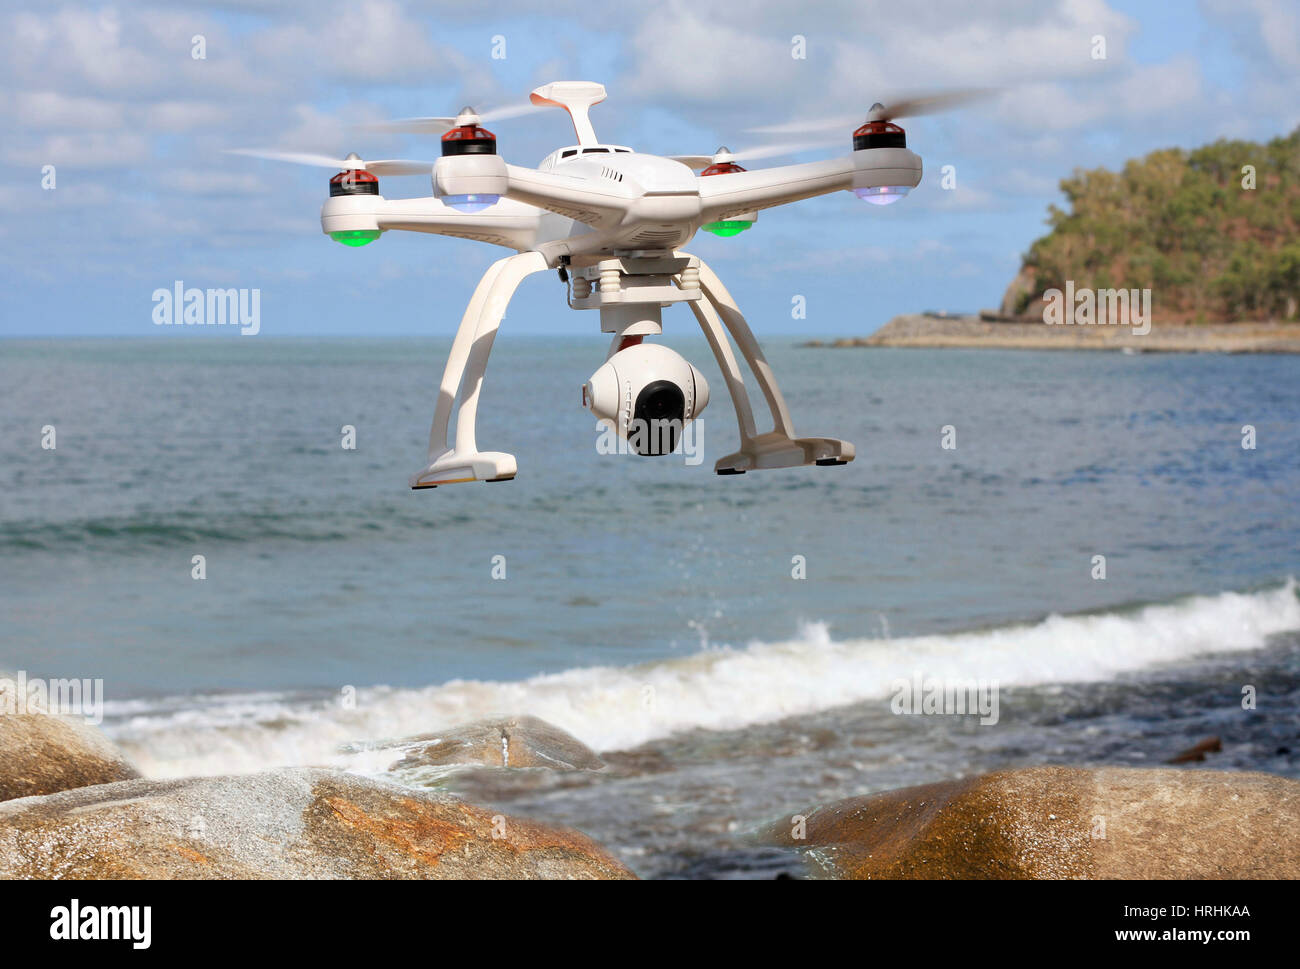 drone with camera flying over the sea - Stock Image